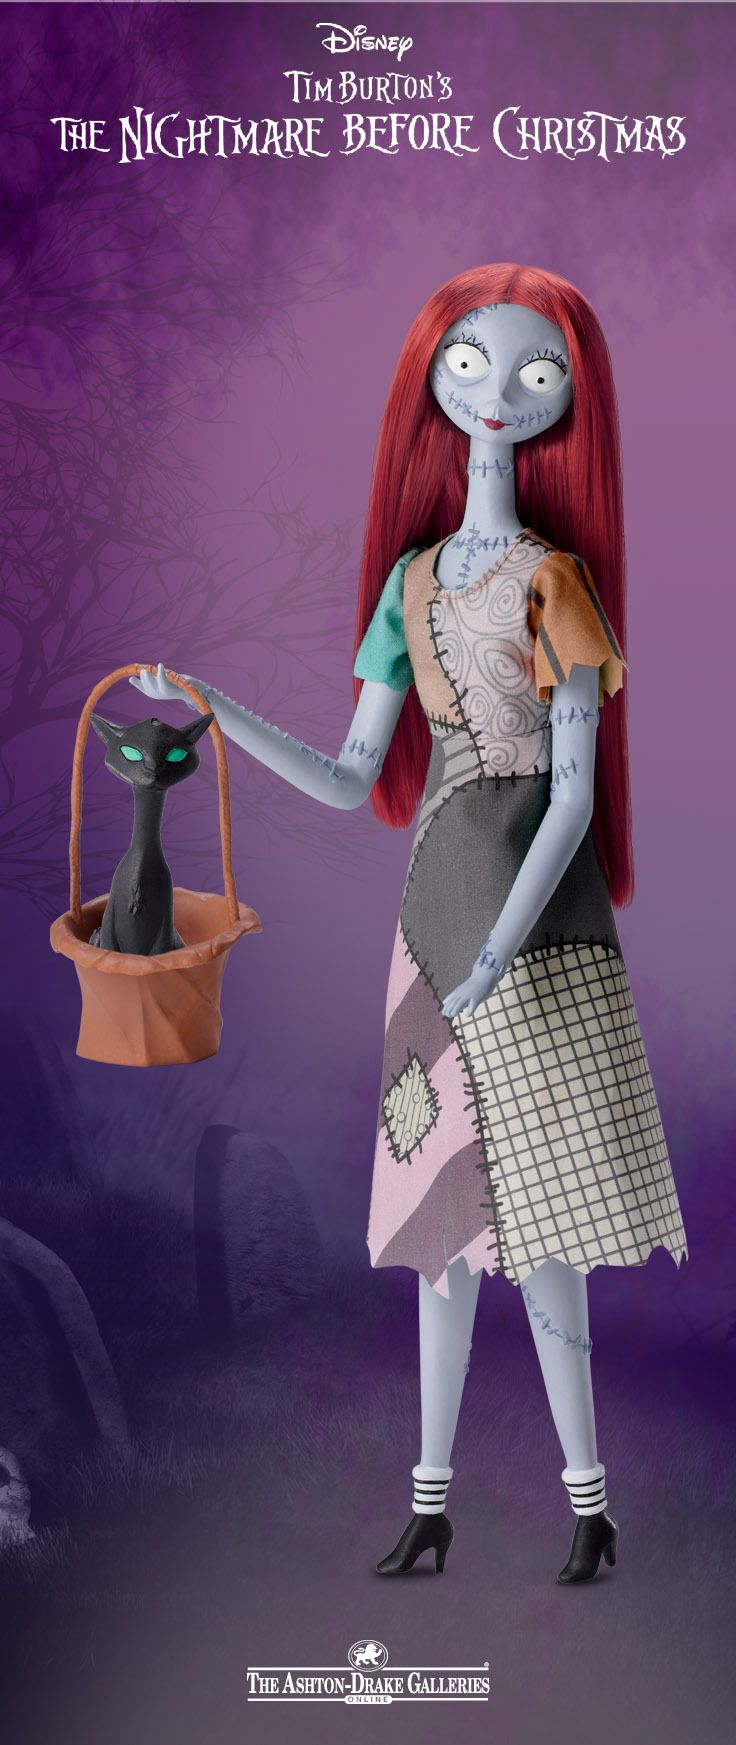 "Sing along to ""Sally's Song"" with this Nightmare Before Christmas Singing Sally Figurine for a spook-tacular time!"